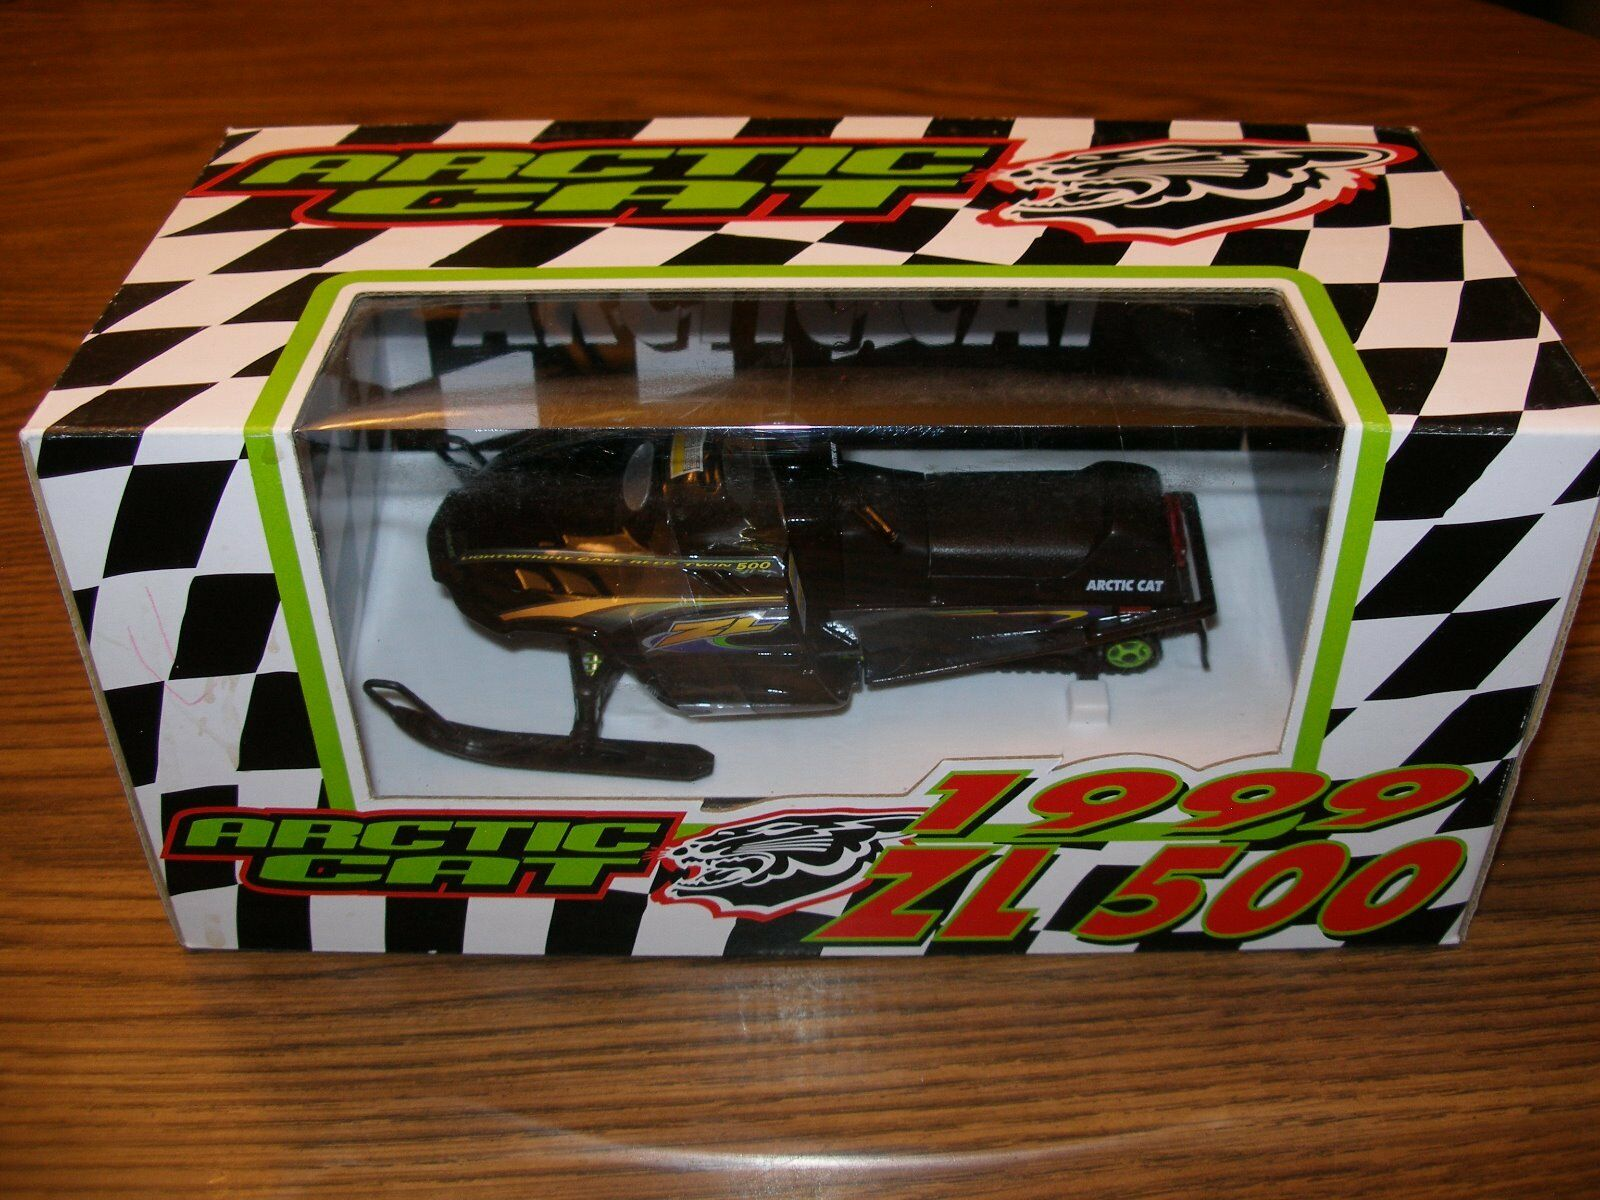 1999 ZL500 Arctic cat snowmobile Diecast Toy Collector